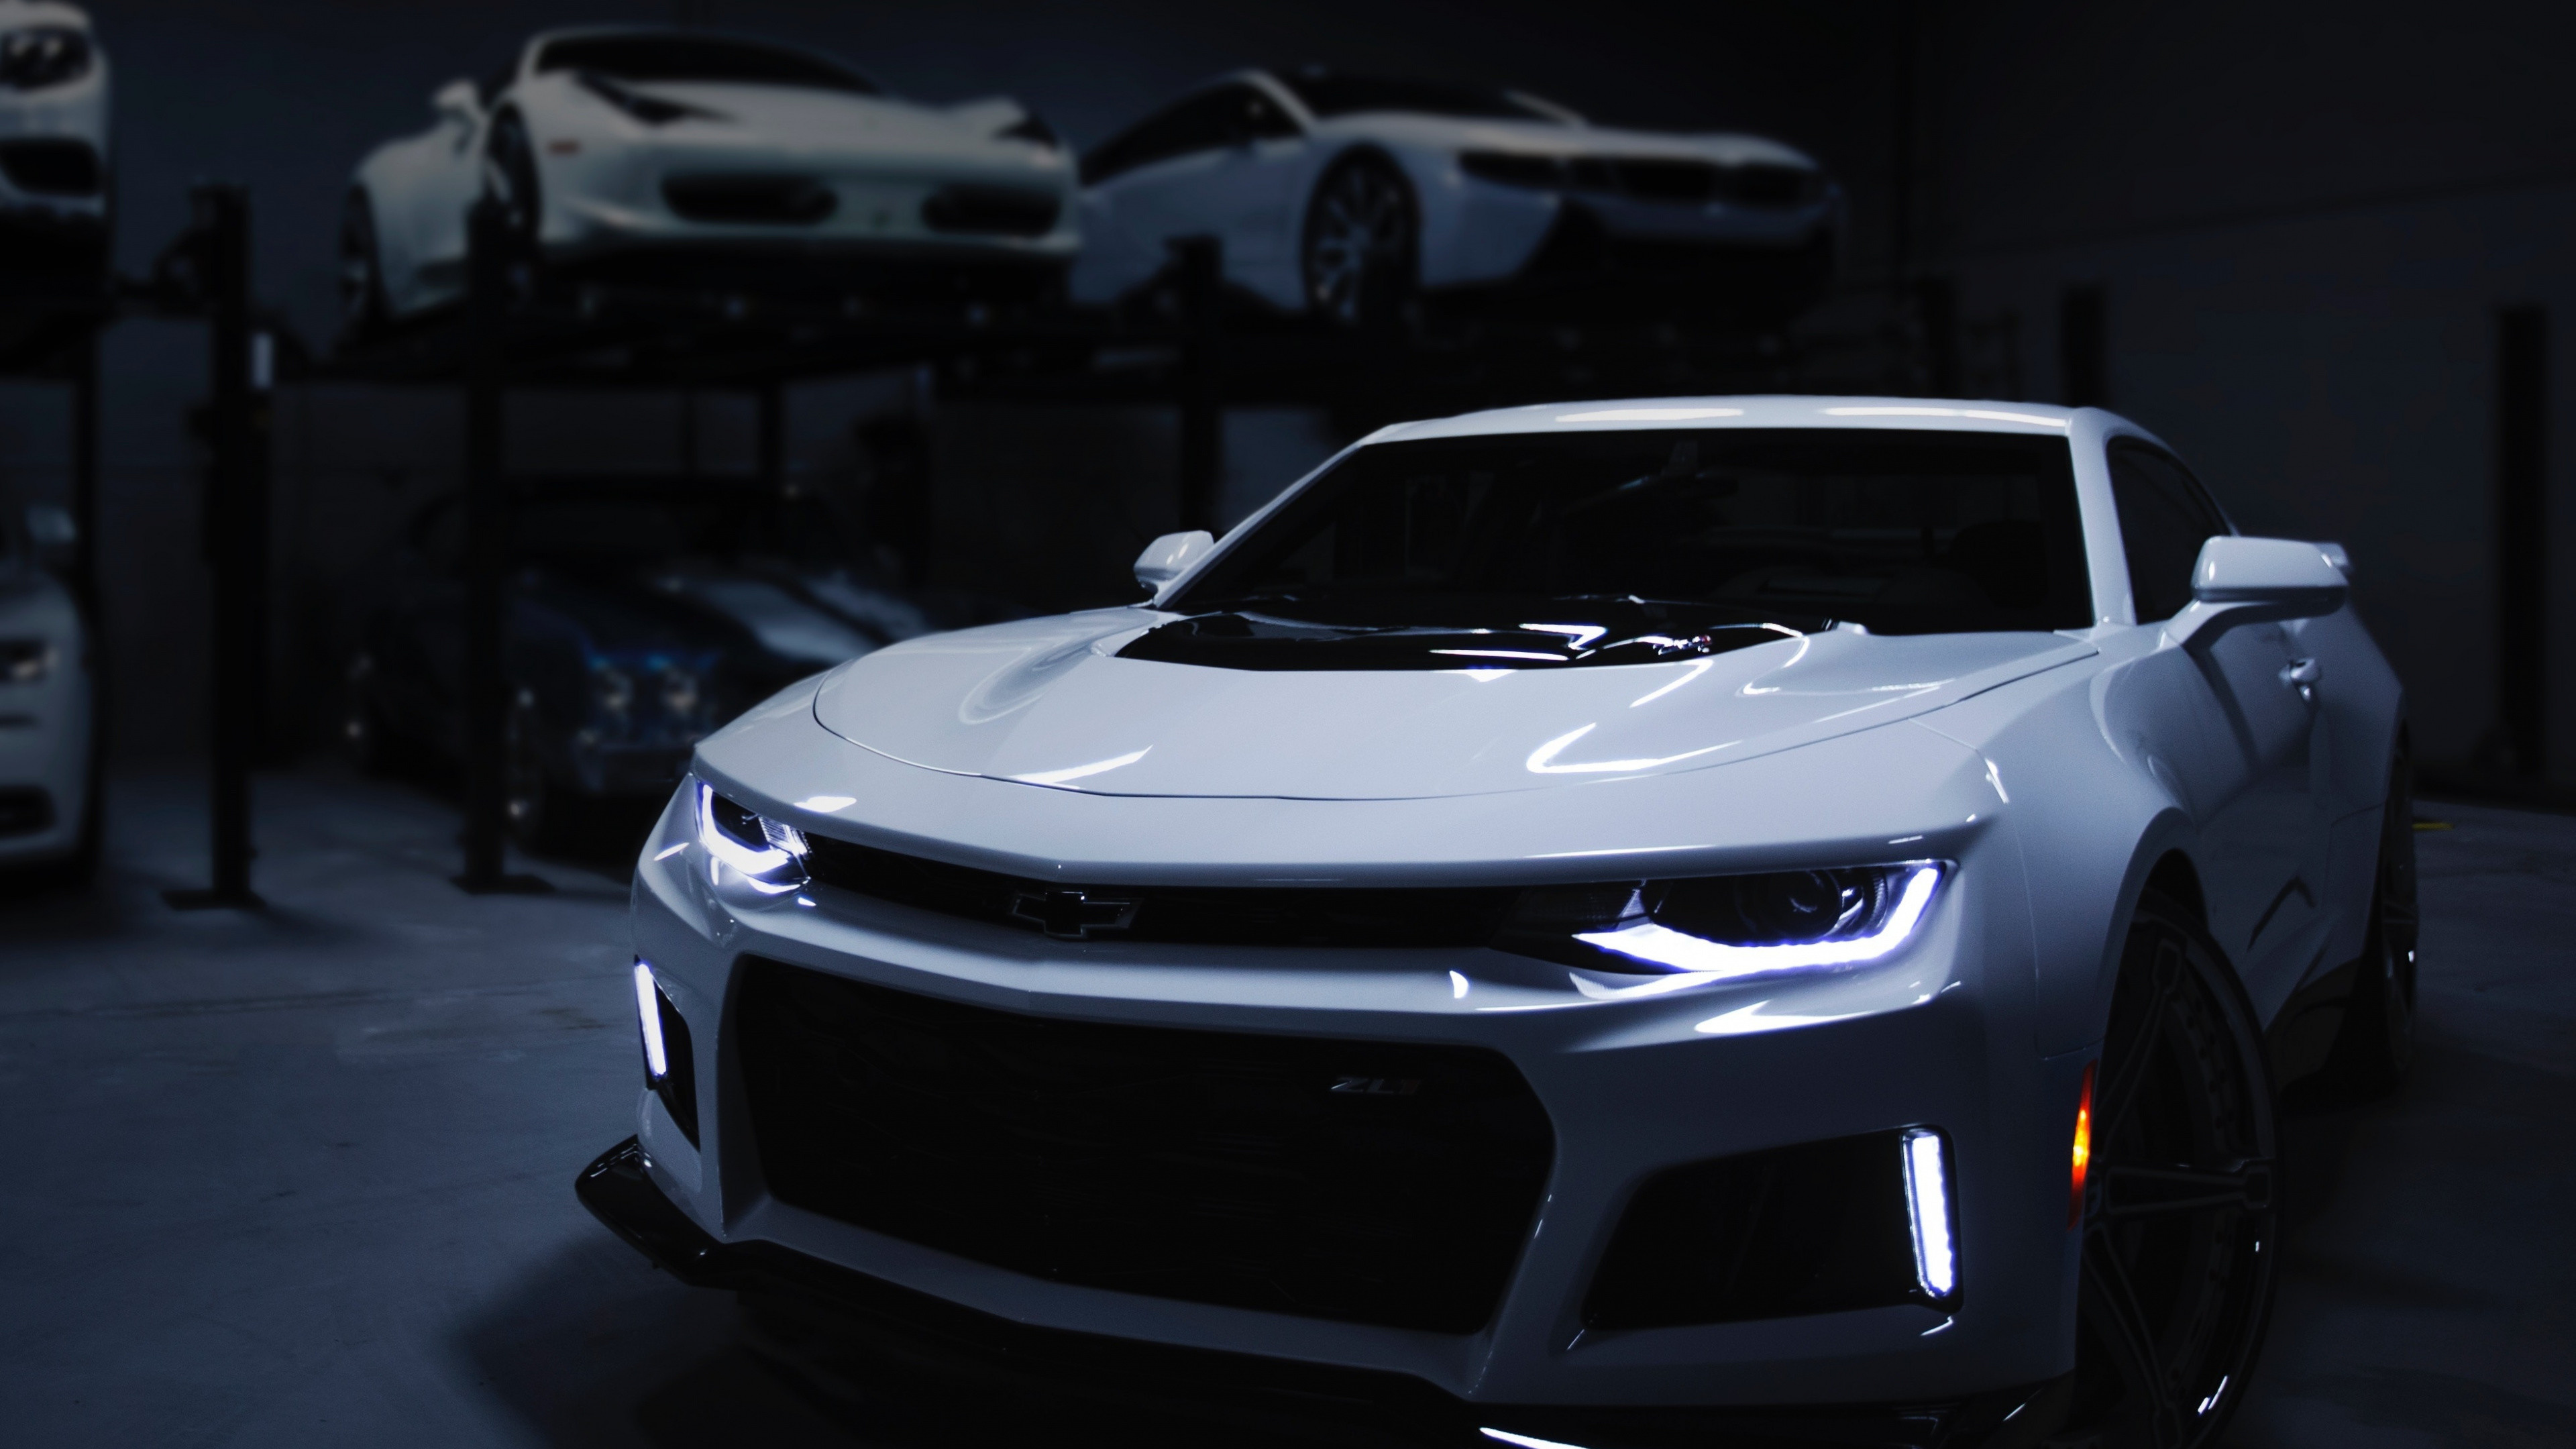 Res: 3840x2160,  wallpaper Chevrolet Camaro ZL1, white car, front